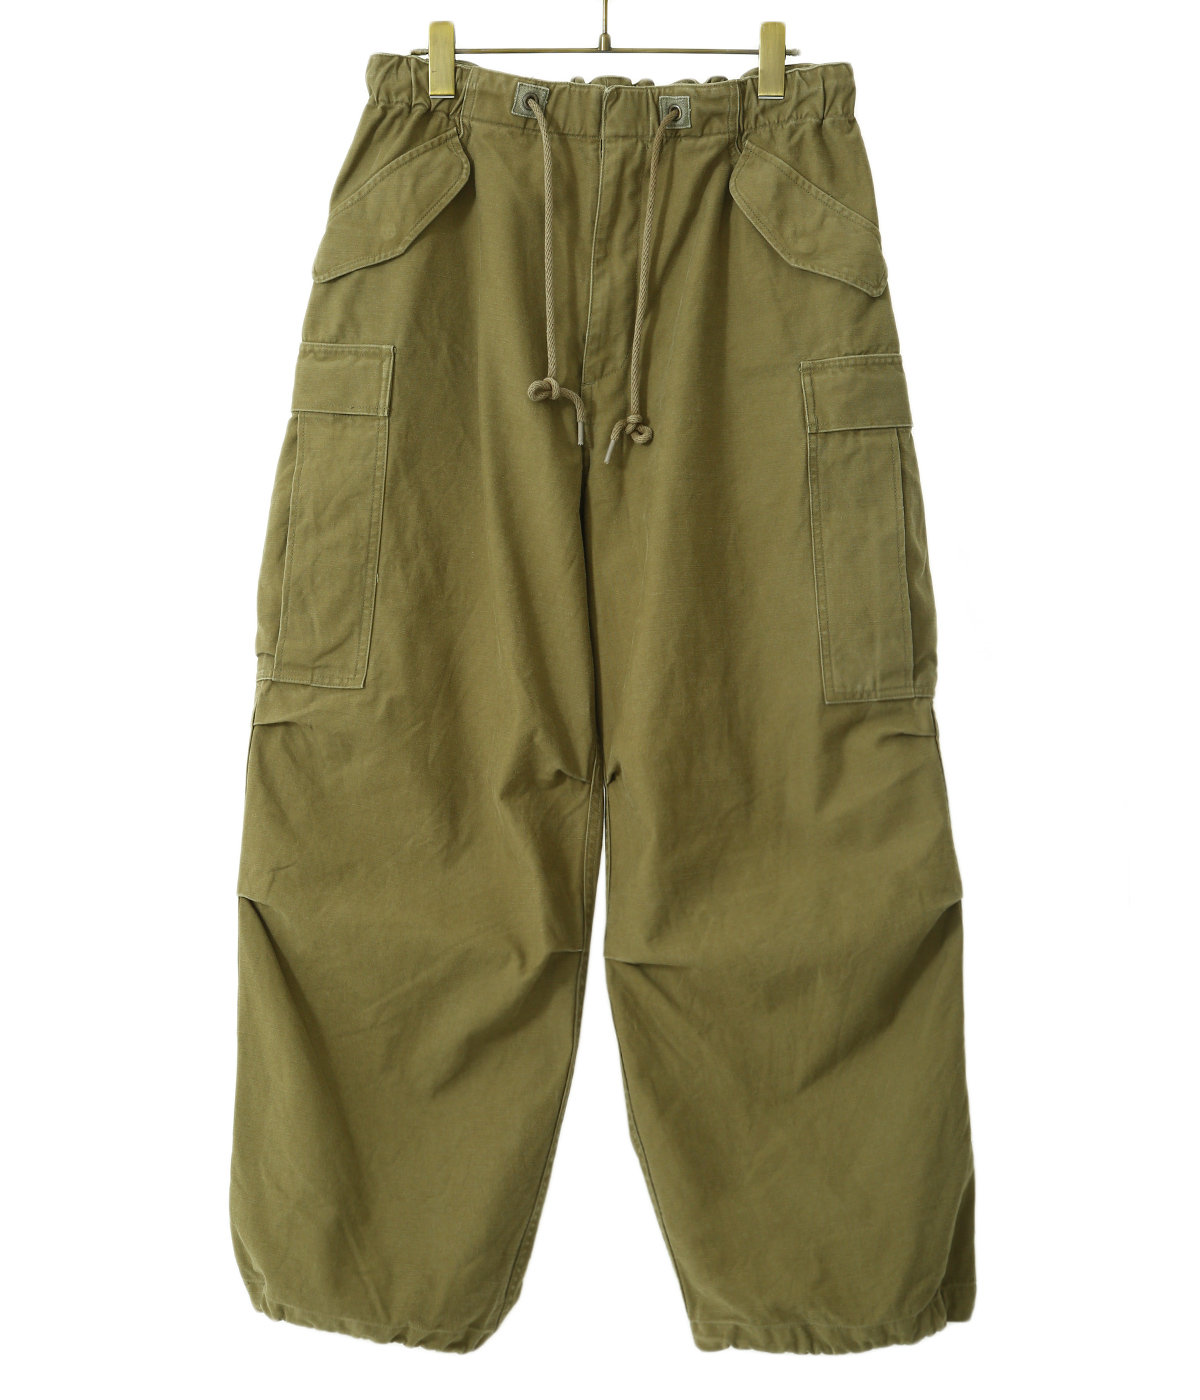 HEAVY BACKSATIN OVER CARGO PANTS